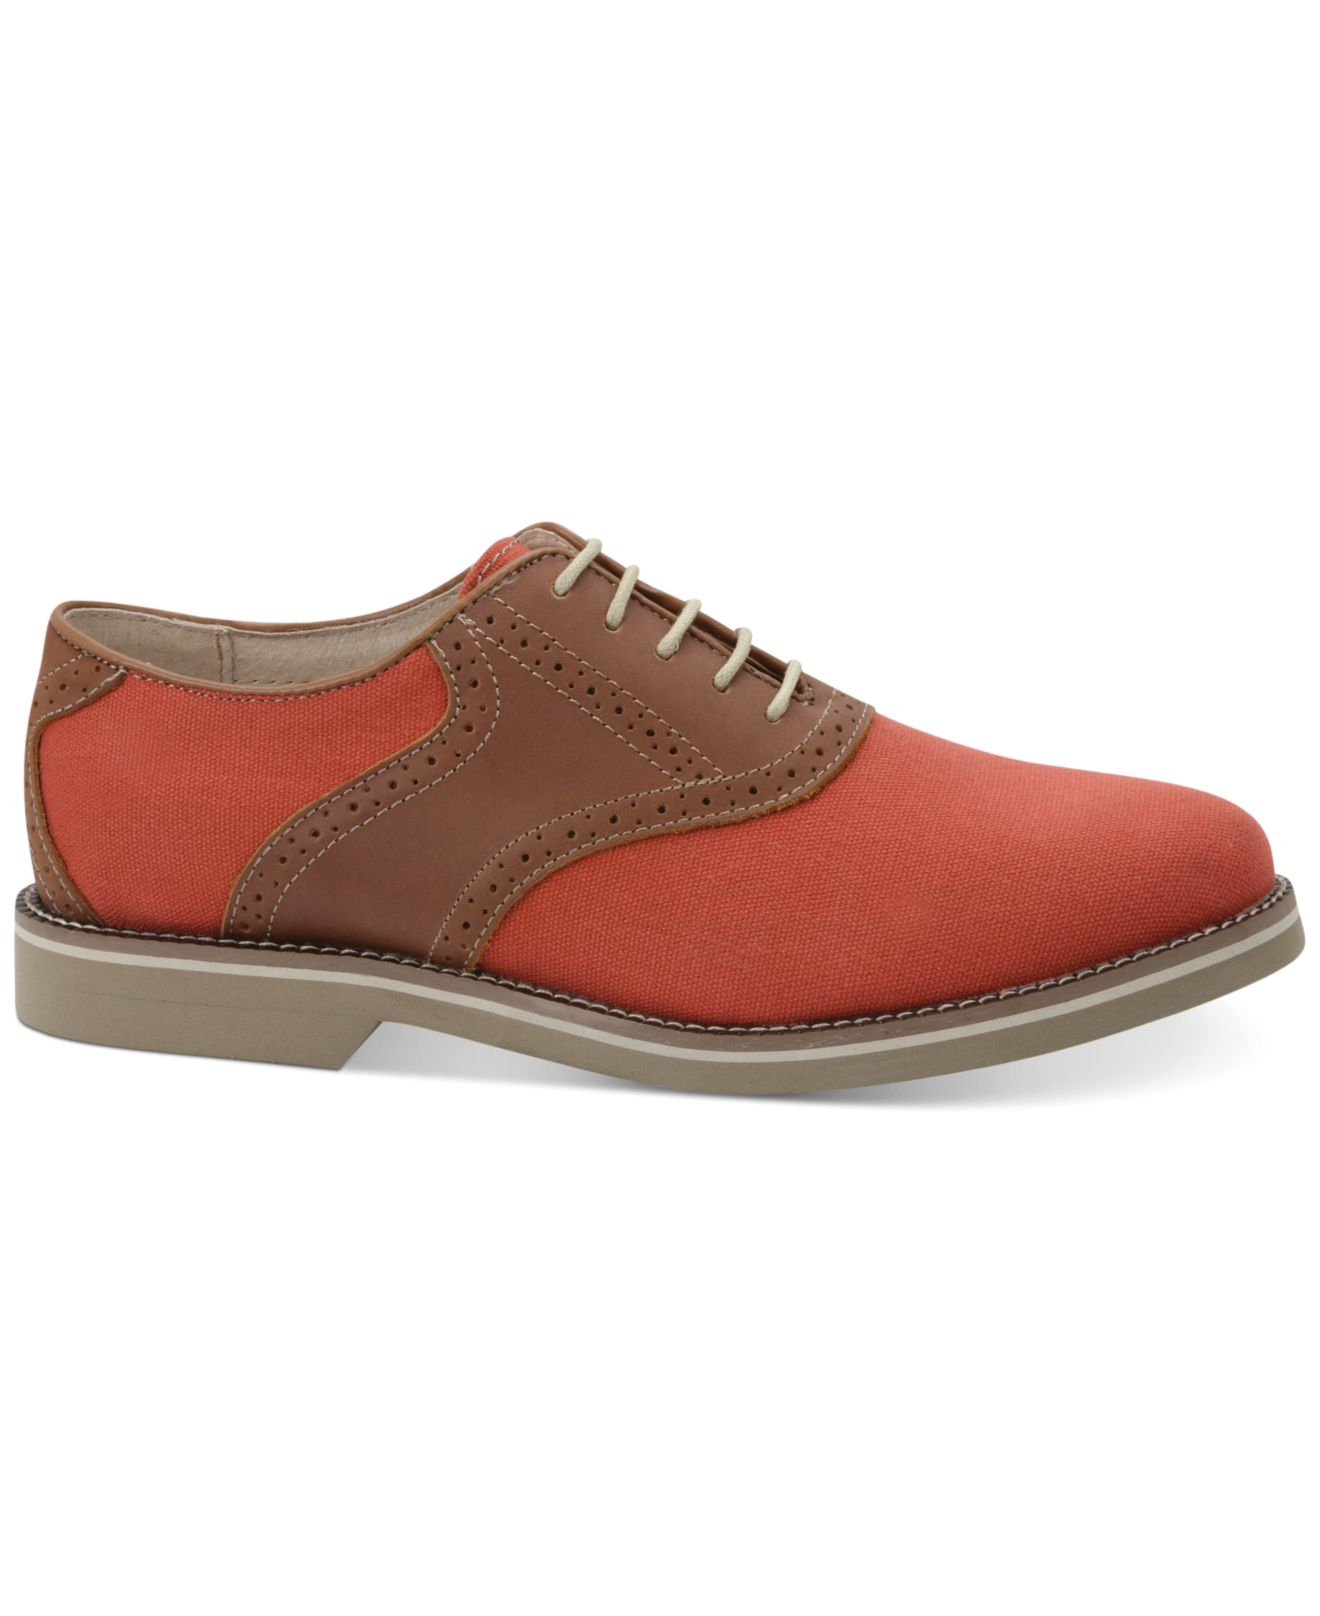 gh bass amp co carson canvas saddle shoes in orange for